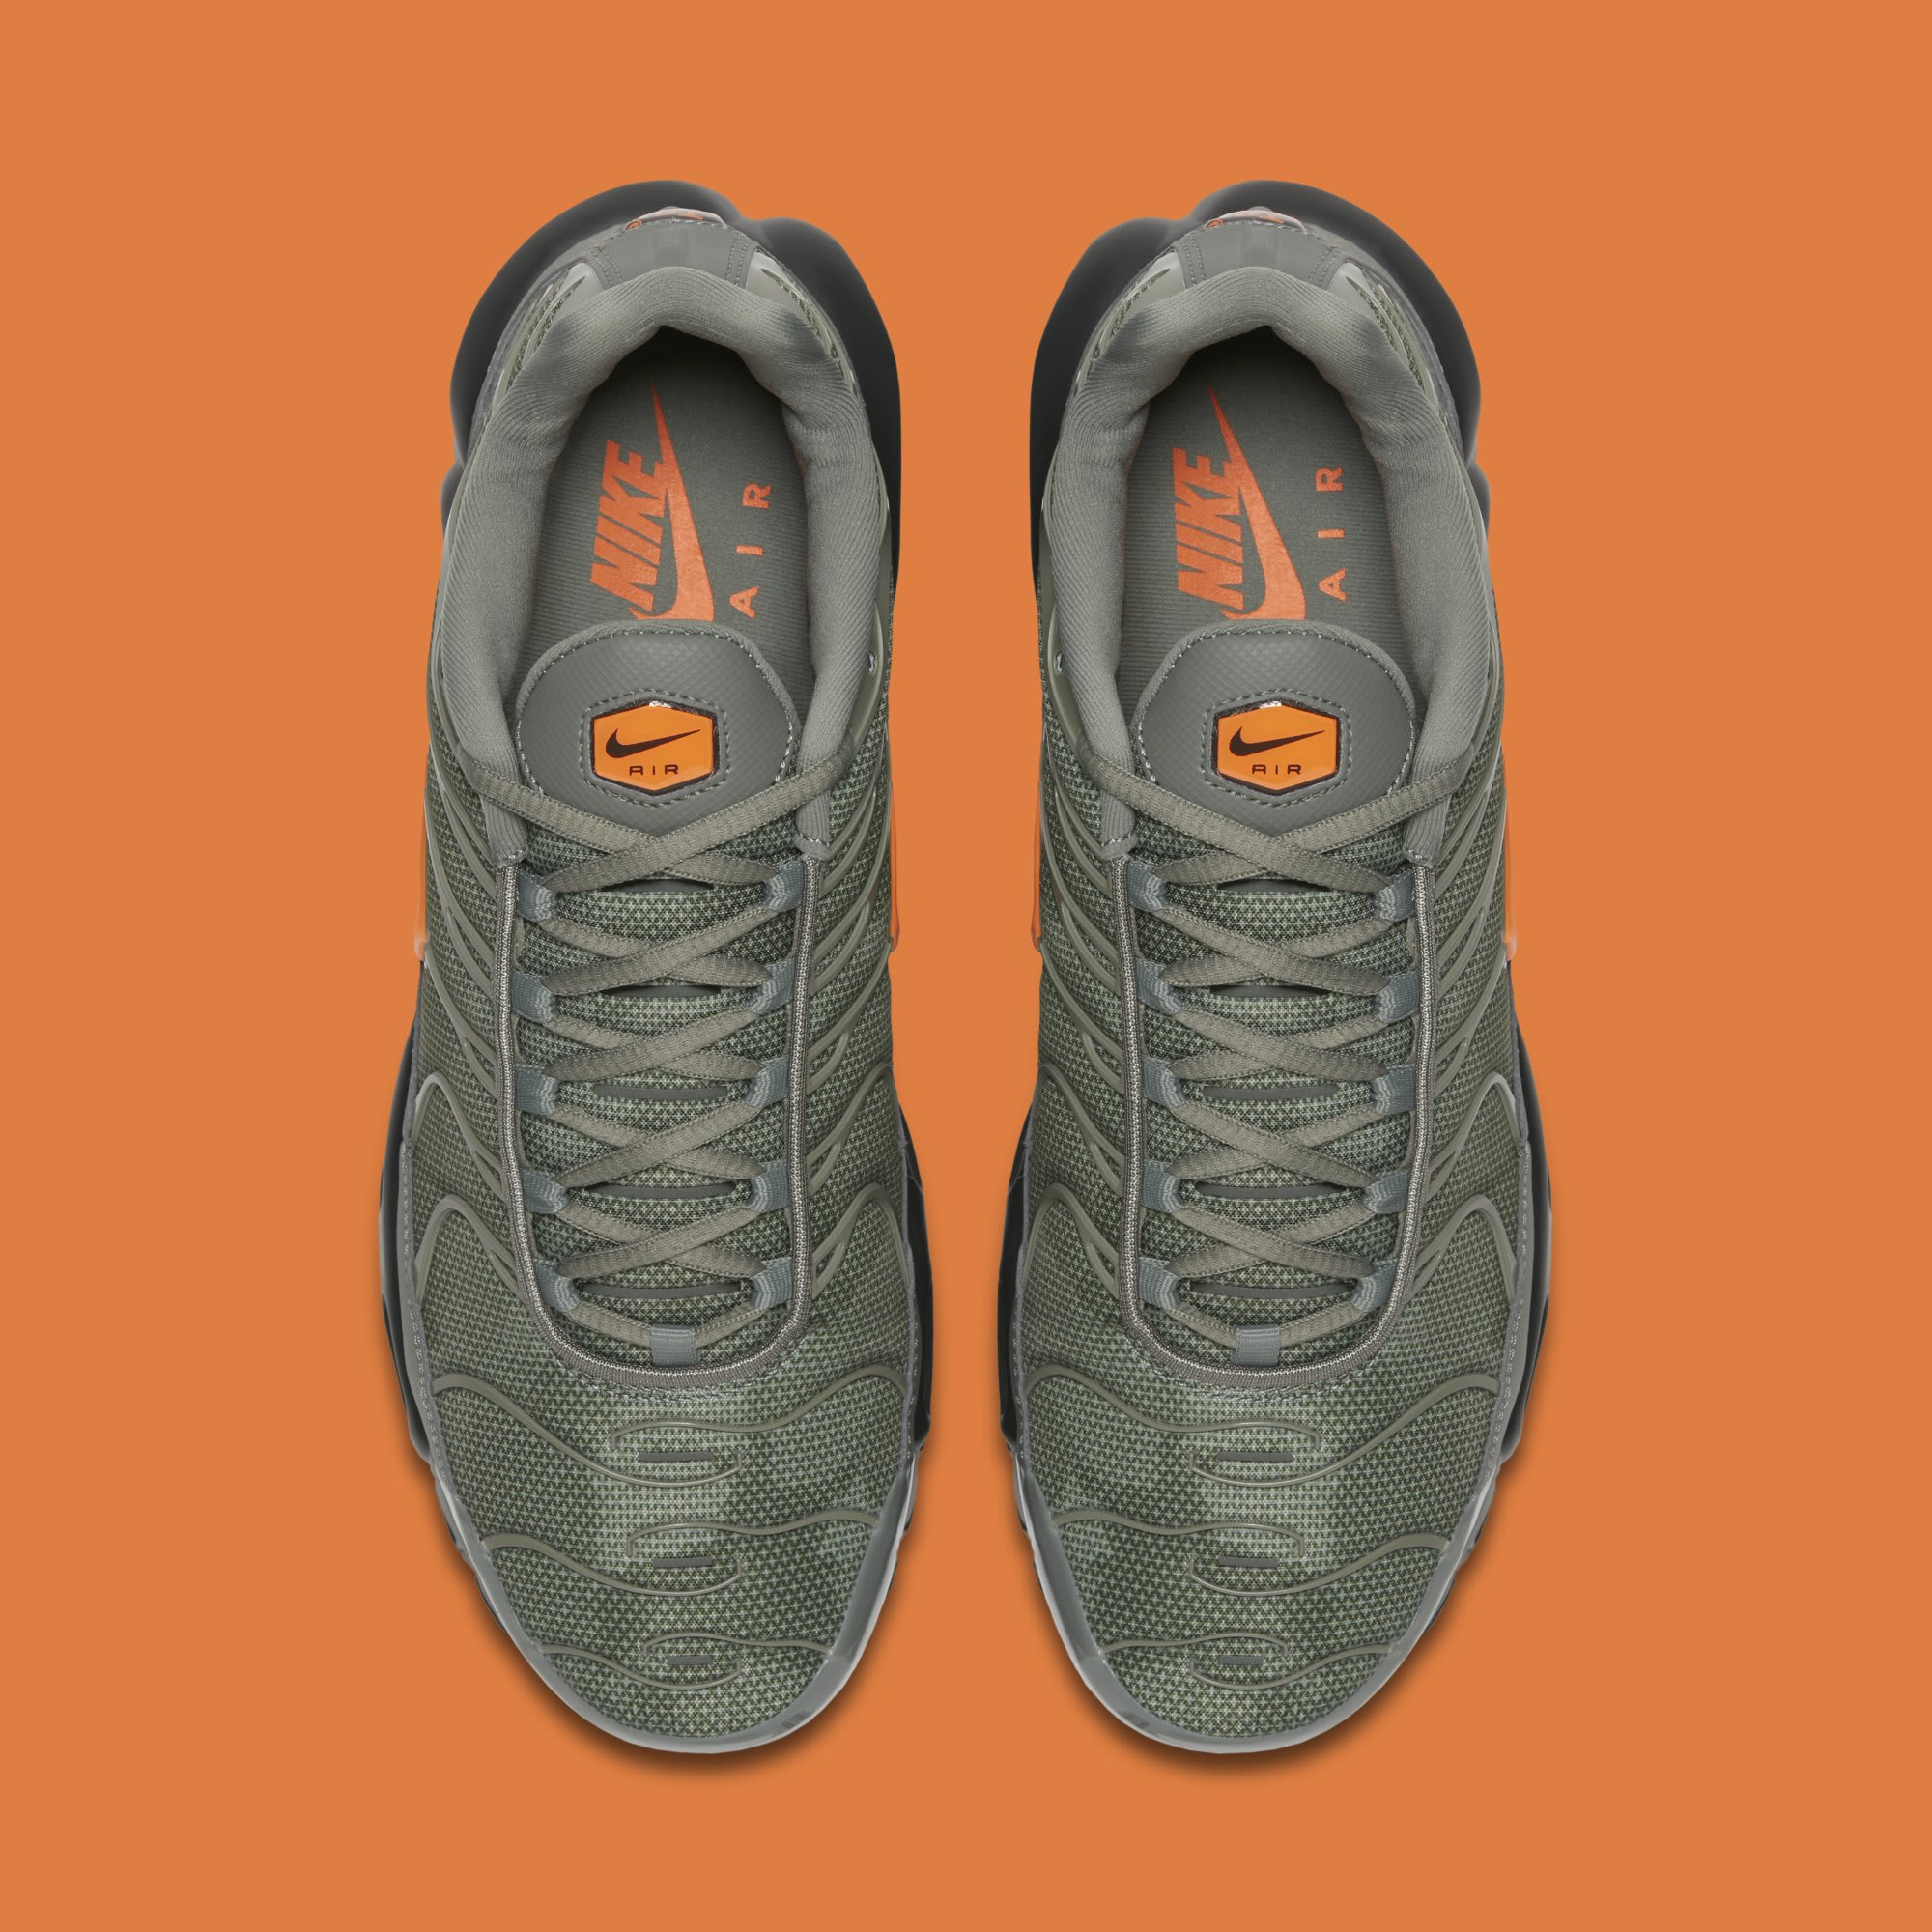 437f4f331c57 Image via Nike Nike Air Max Plus  Dark Stucco Total Orange  AJ2013-003 (Top